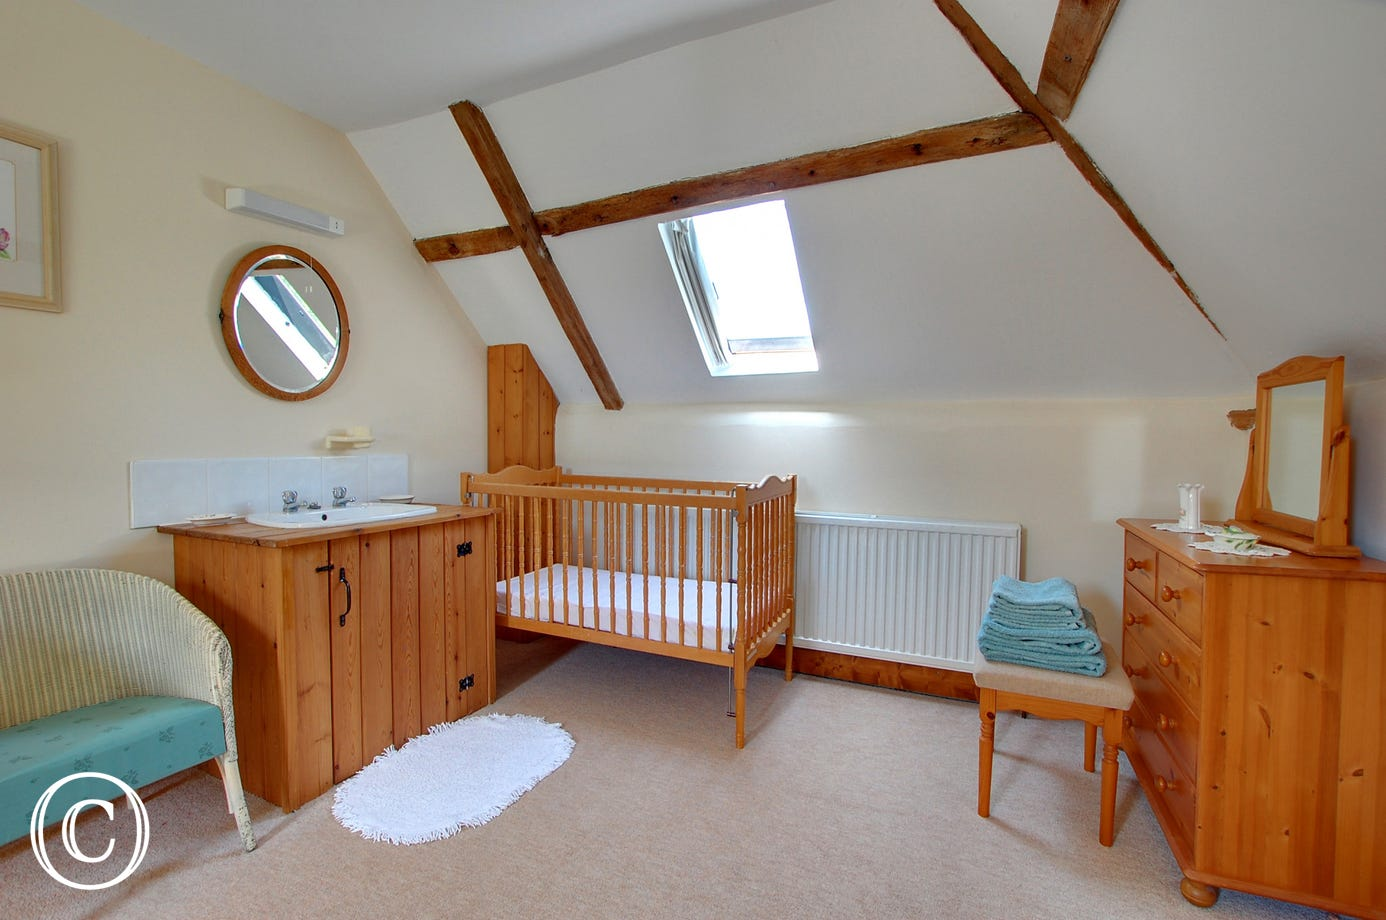 Spacious double room with a wash hand basin and room for a cot, ideal for a young family